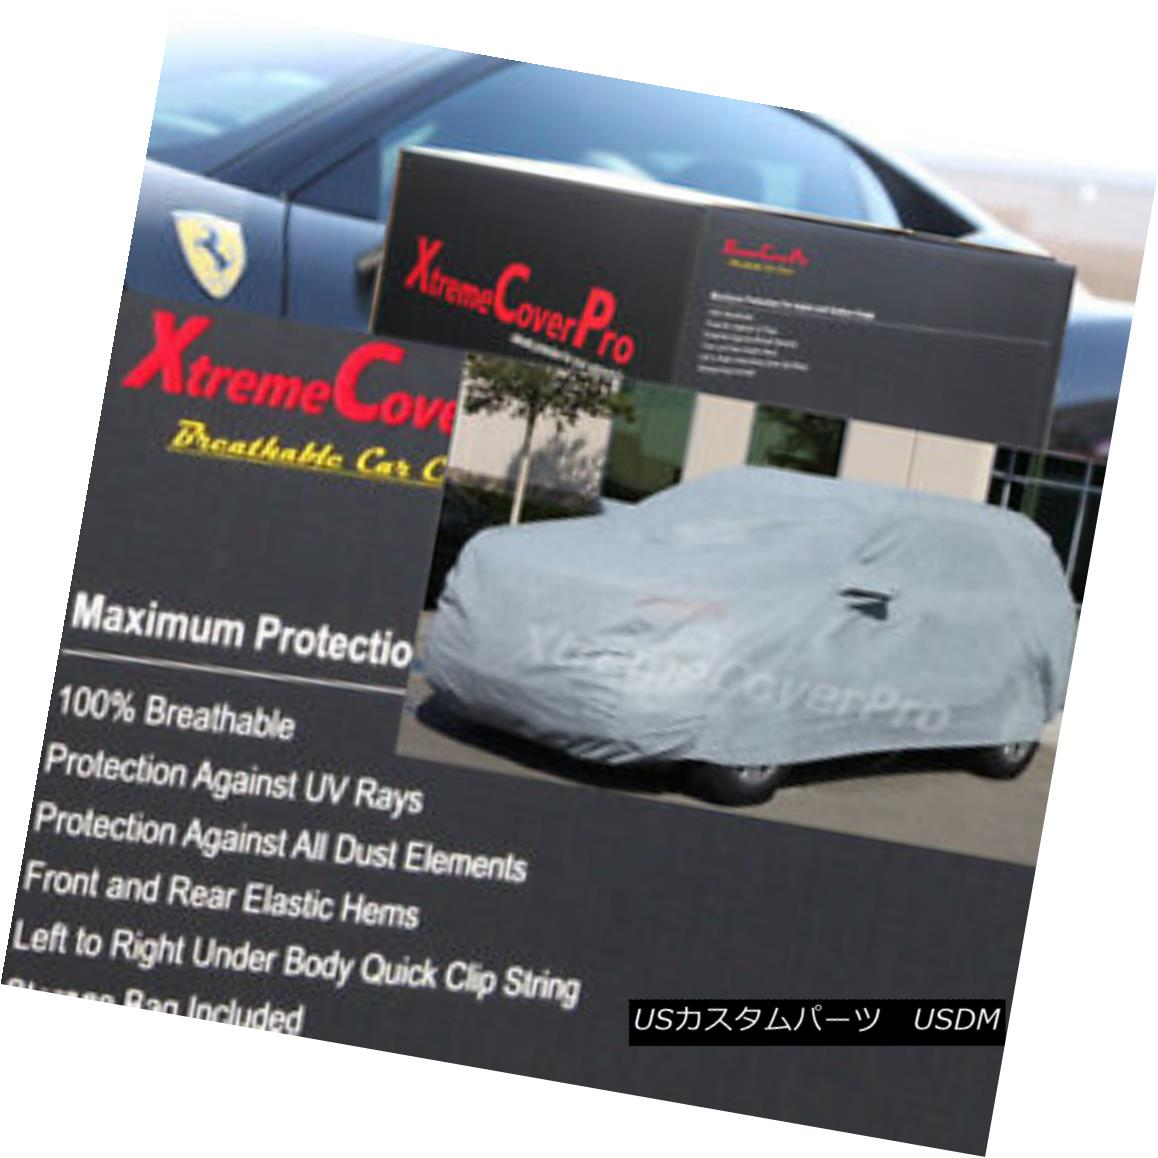 カーカバー 2015 GMC ALL-NEW YUKON Breathable Car Cover w/Mirror Pockets - Gray 2015 GMC ALL-NEW YUKON通気性のある車カバー付き/ミラーポケット - グレー